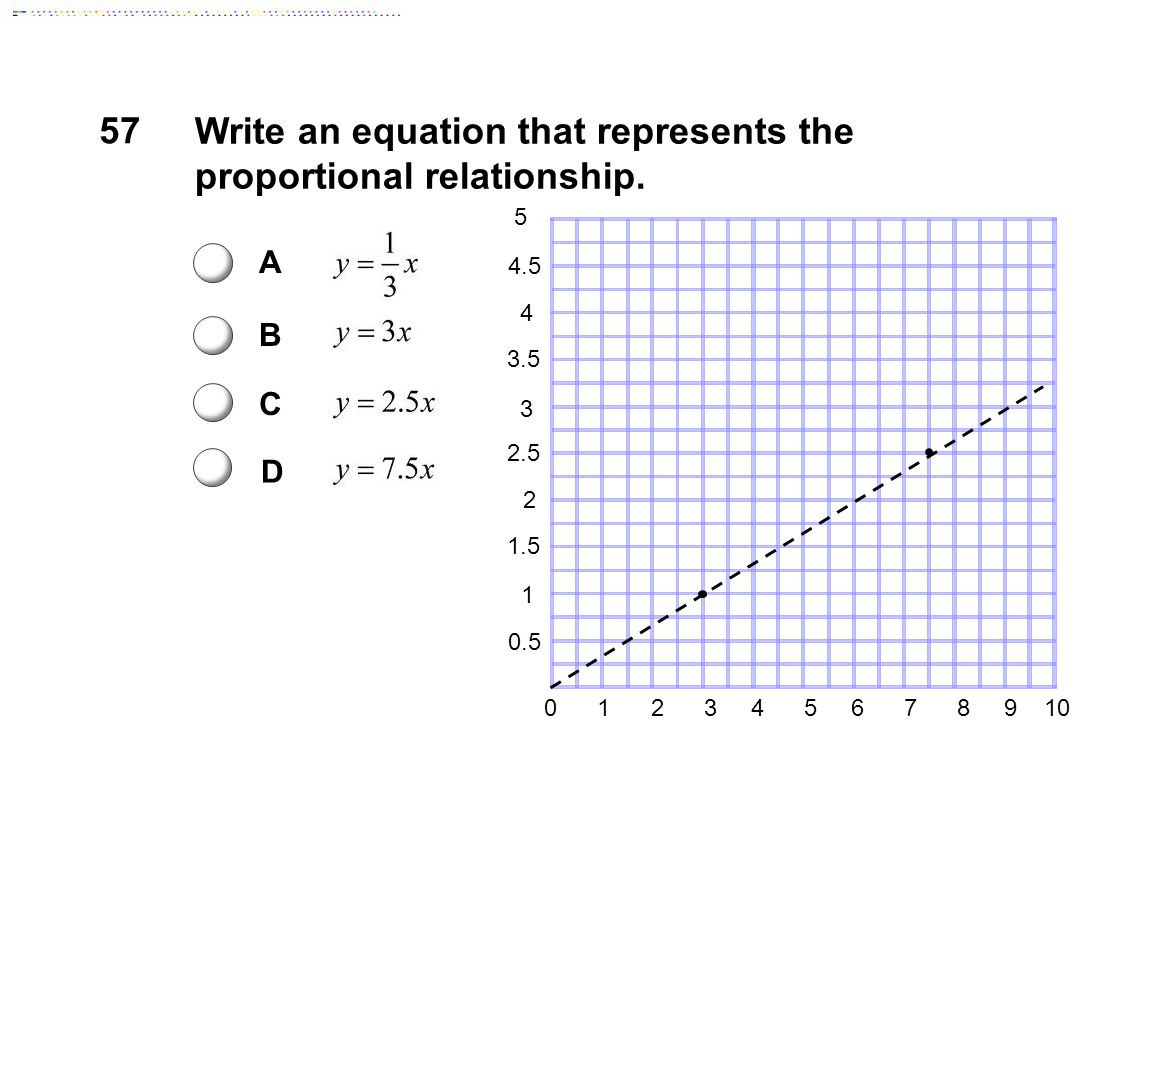 Write an equation that represents the proportional relationship.